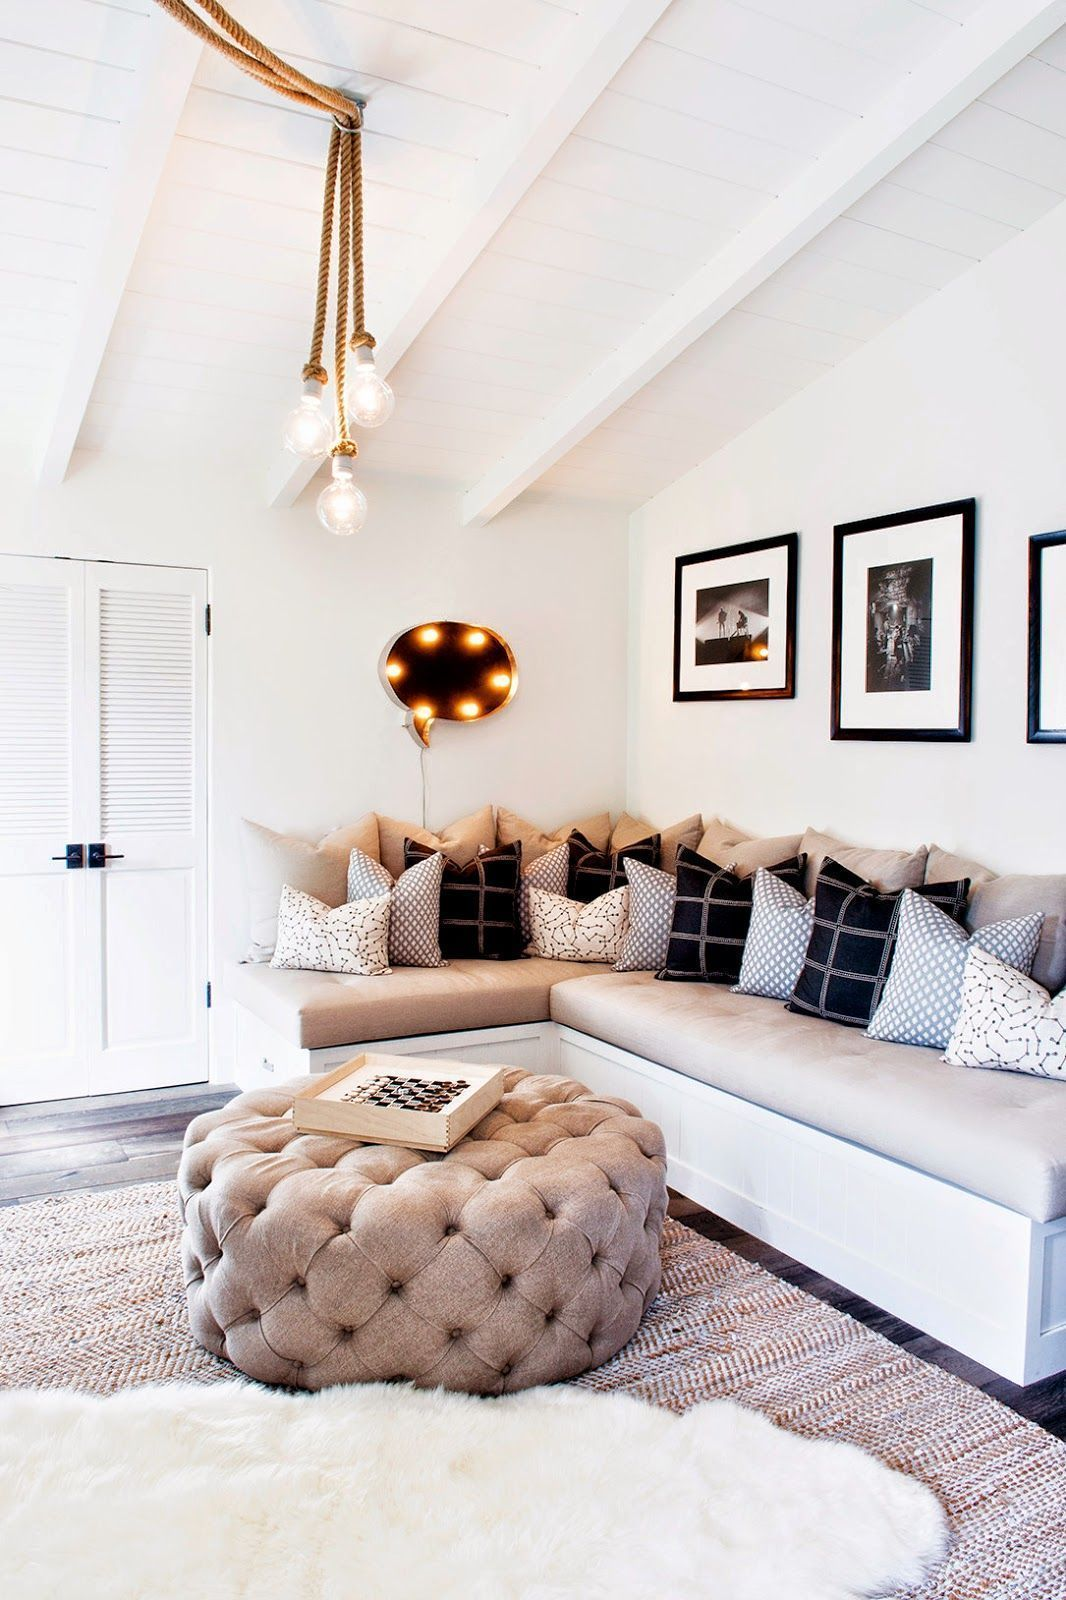 Usa contemporary home decor and mid century modern lighting ideas from delightfull http also pin by graceful house on luxurious interiors in rh pinterest